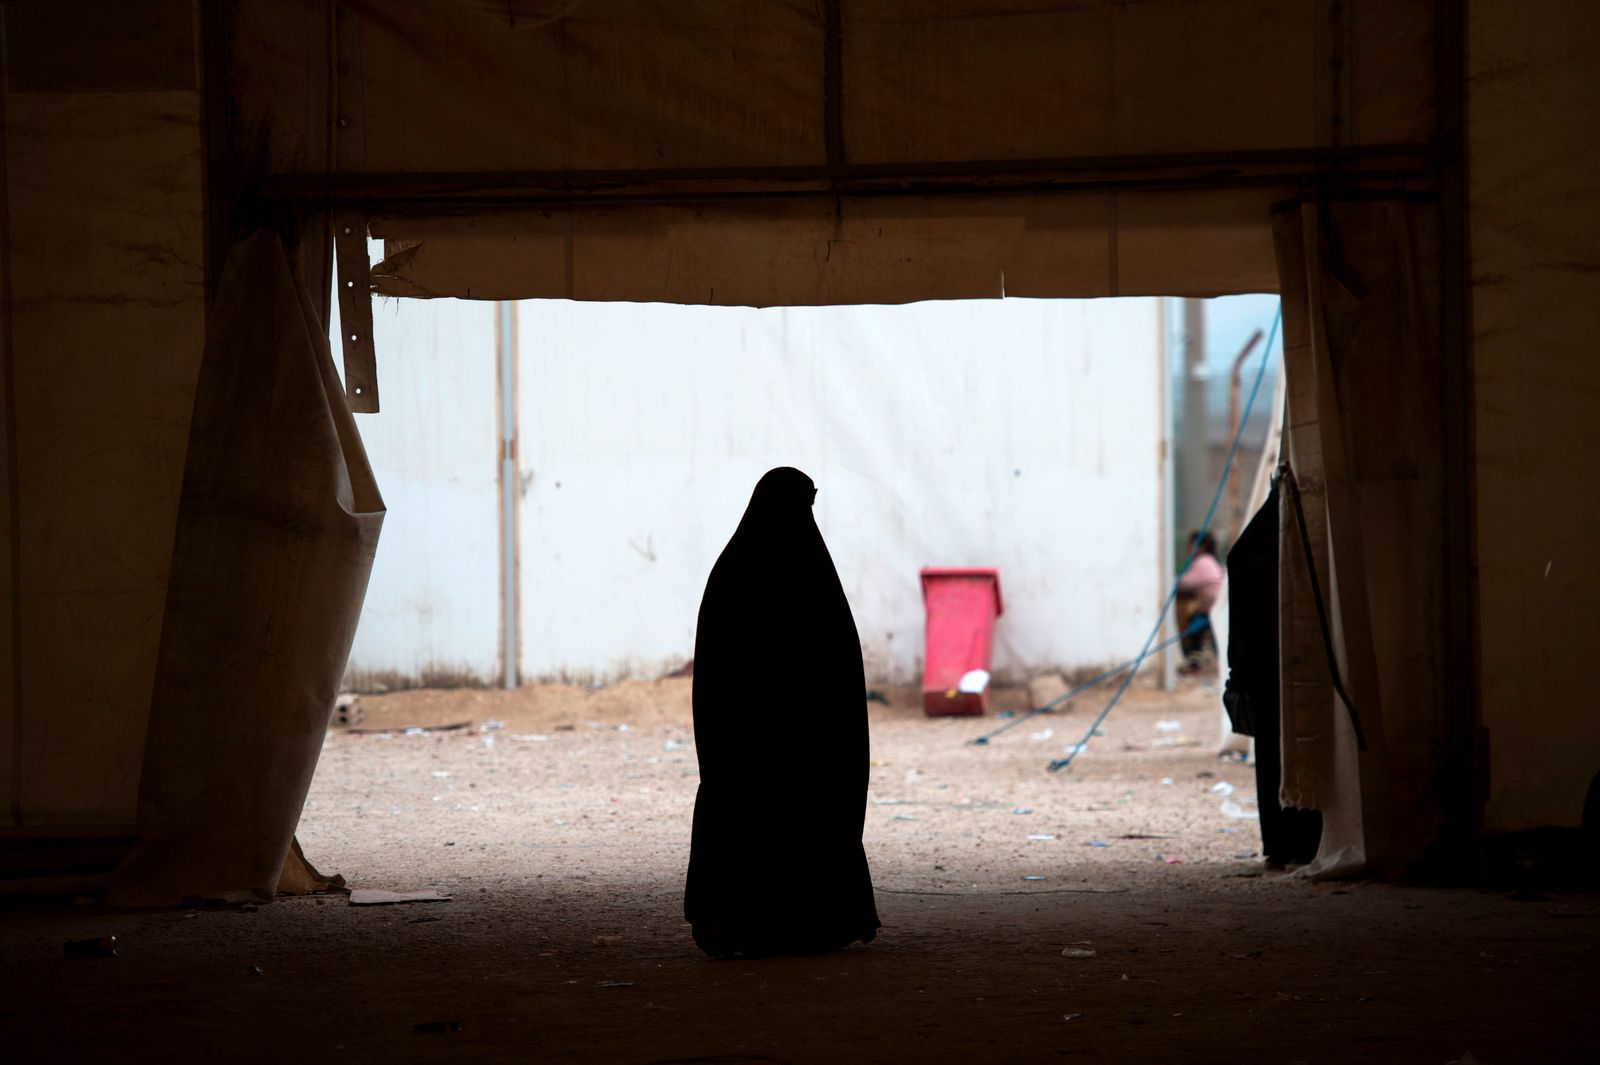 TOPSHOT-SYRIA-CONFLICT-DISPLACED